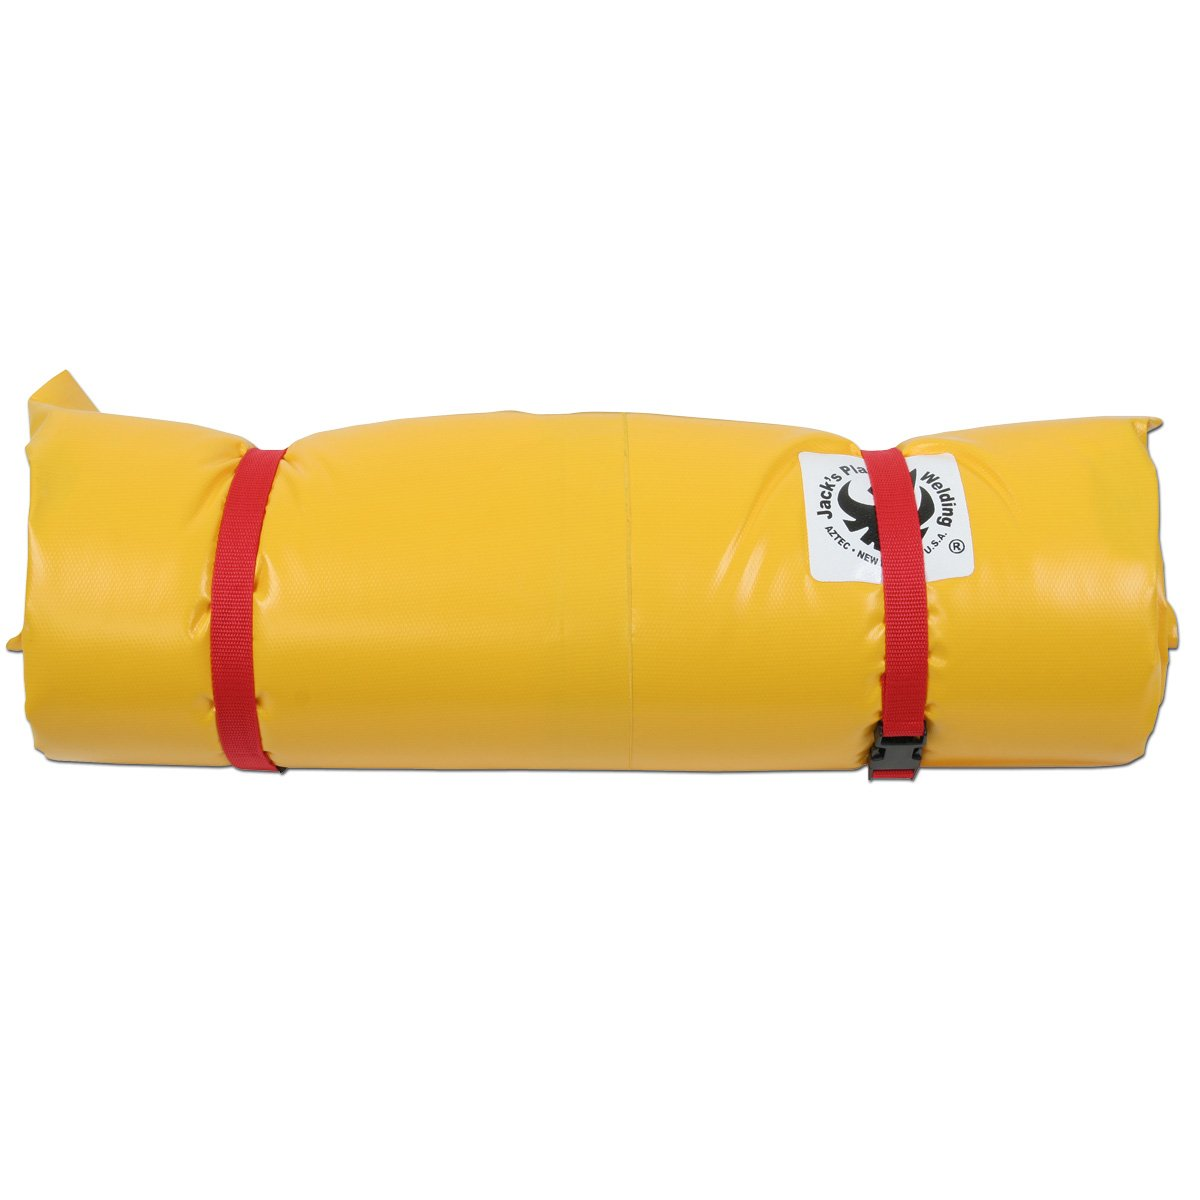 JACK'S PLASTIC Super Paco Sleeping Pad Yellow One Size